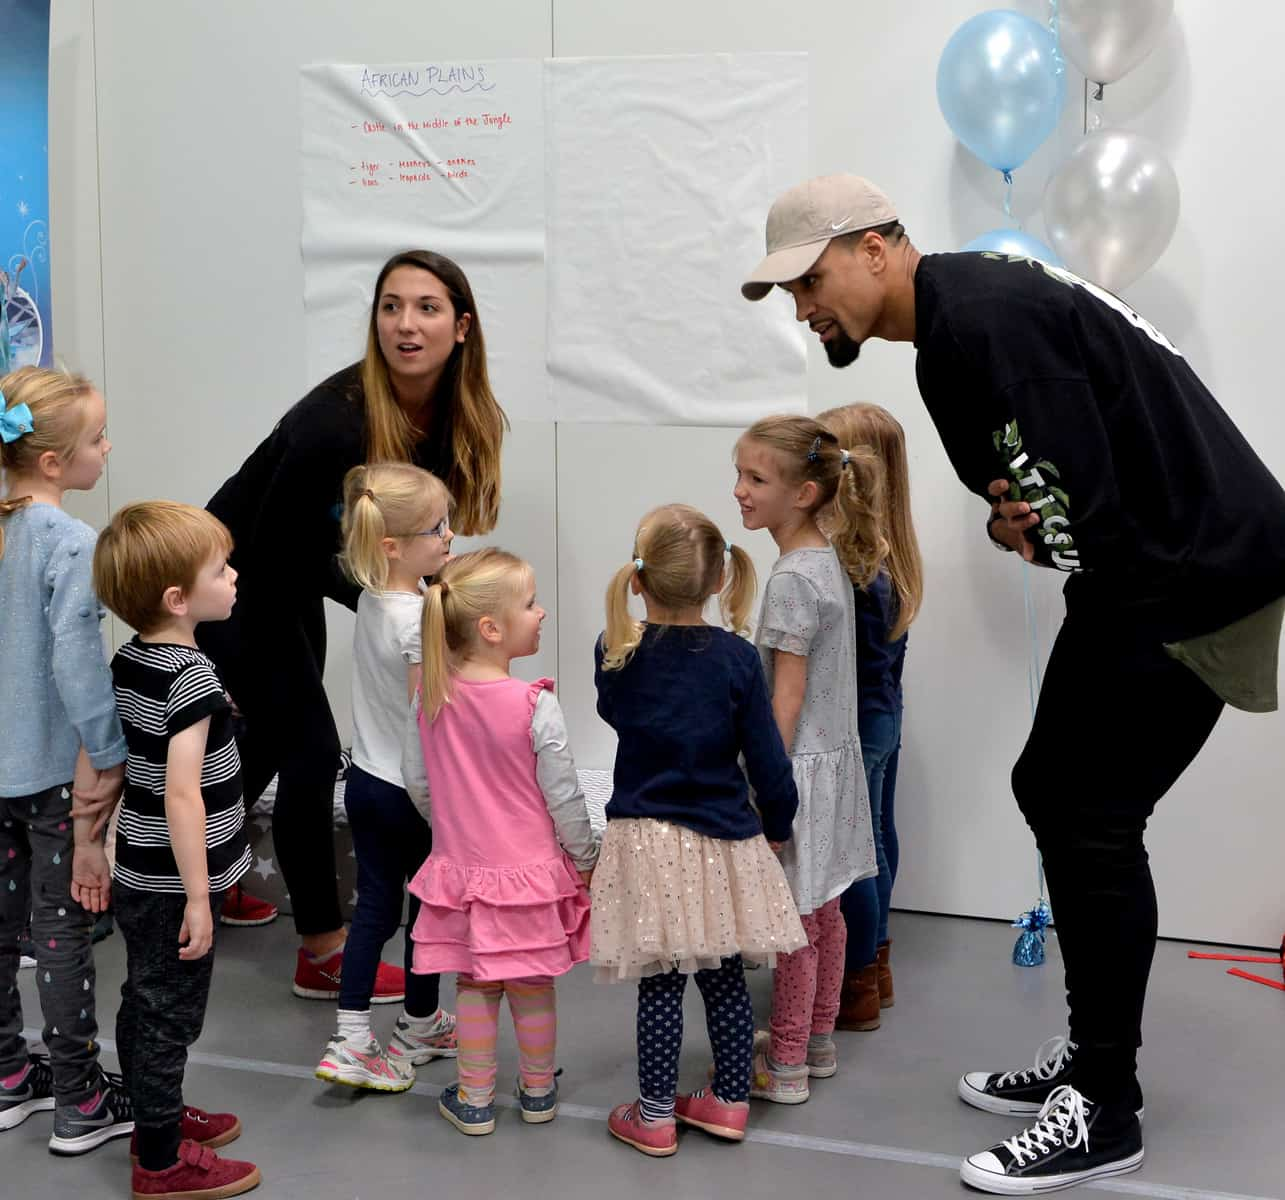 Disney On Ice. Birmingham. 3rd September 2017. Ahead of Disney On Ice coming to Birmingham on the 18th October Ashley Banjo hosts a dance workshop as part of the Fit to Dance programme Picture by Simon Hadley. www.simonhadley.co.uk